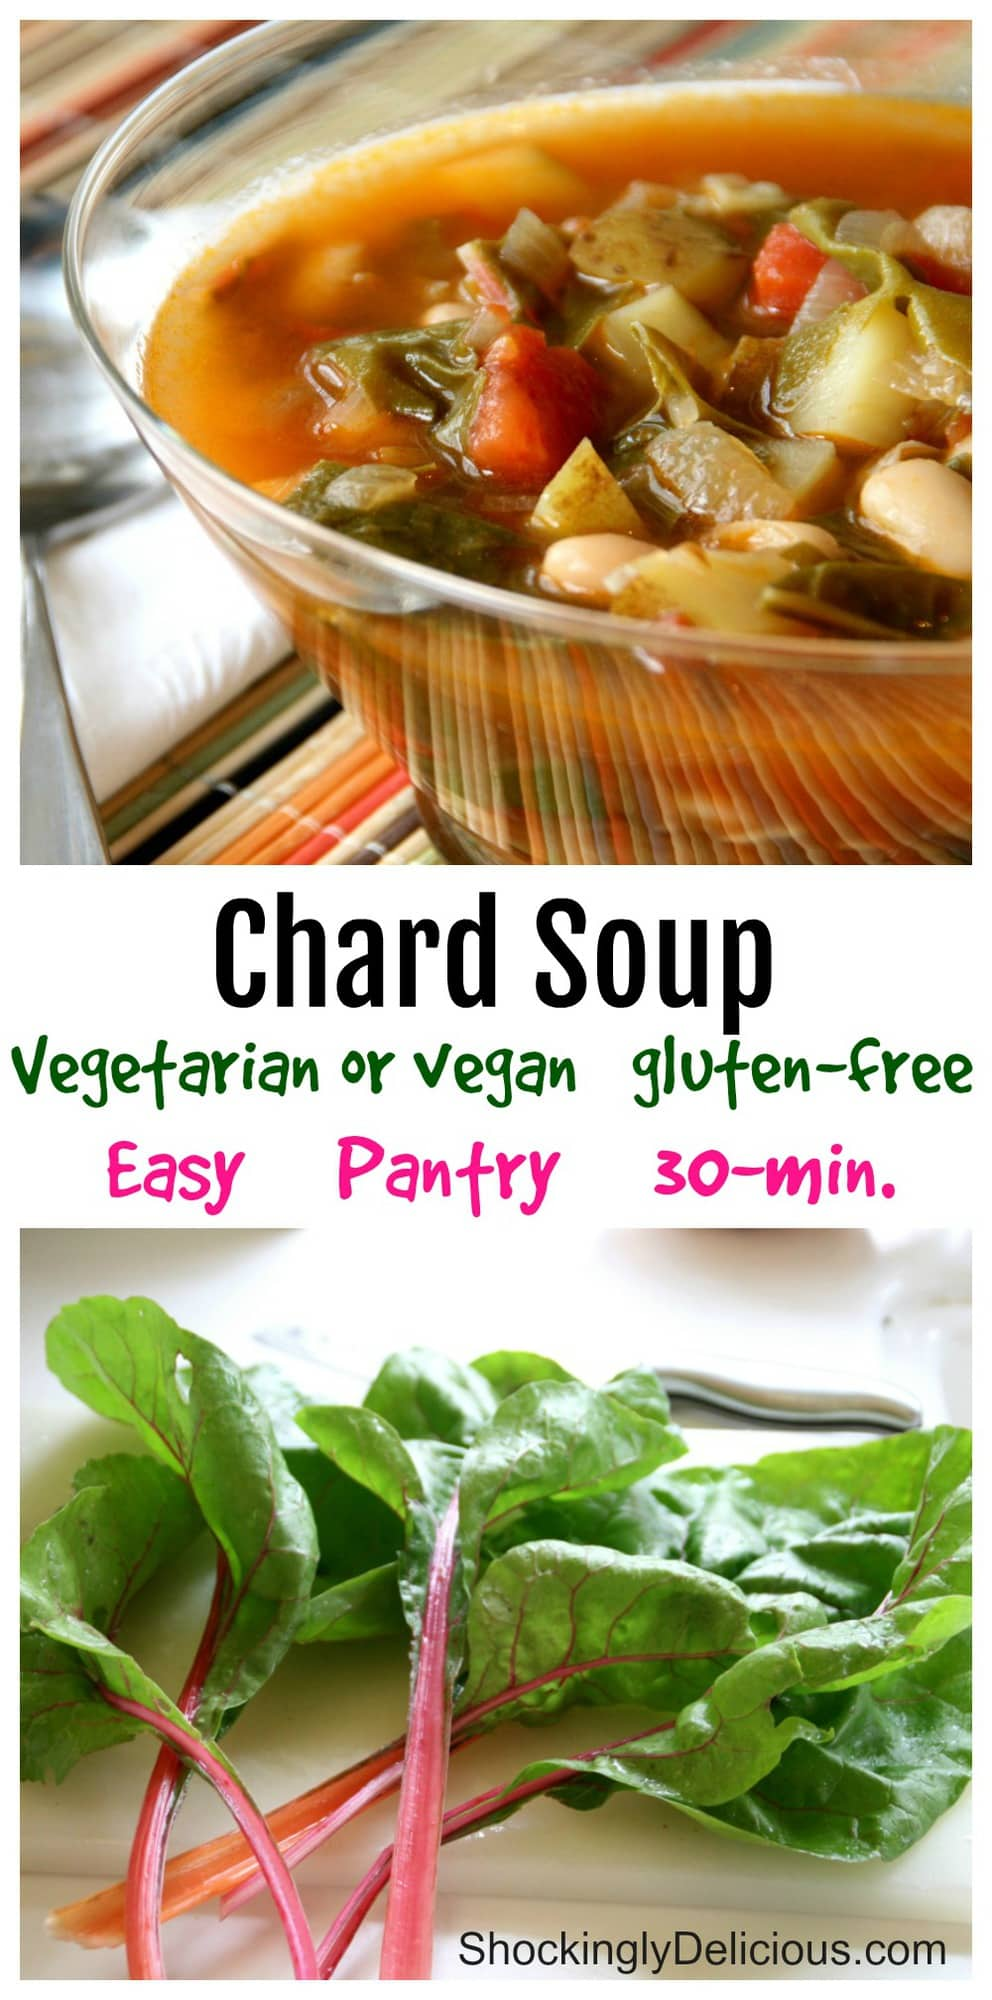 Vegetarian Chard Soup collage on ShockinglyDelicious.com